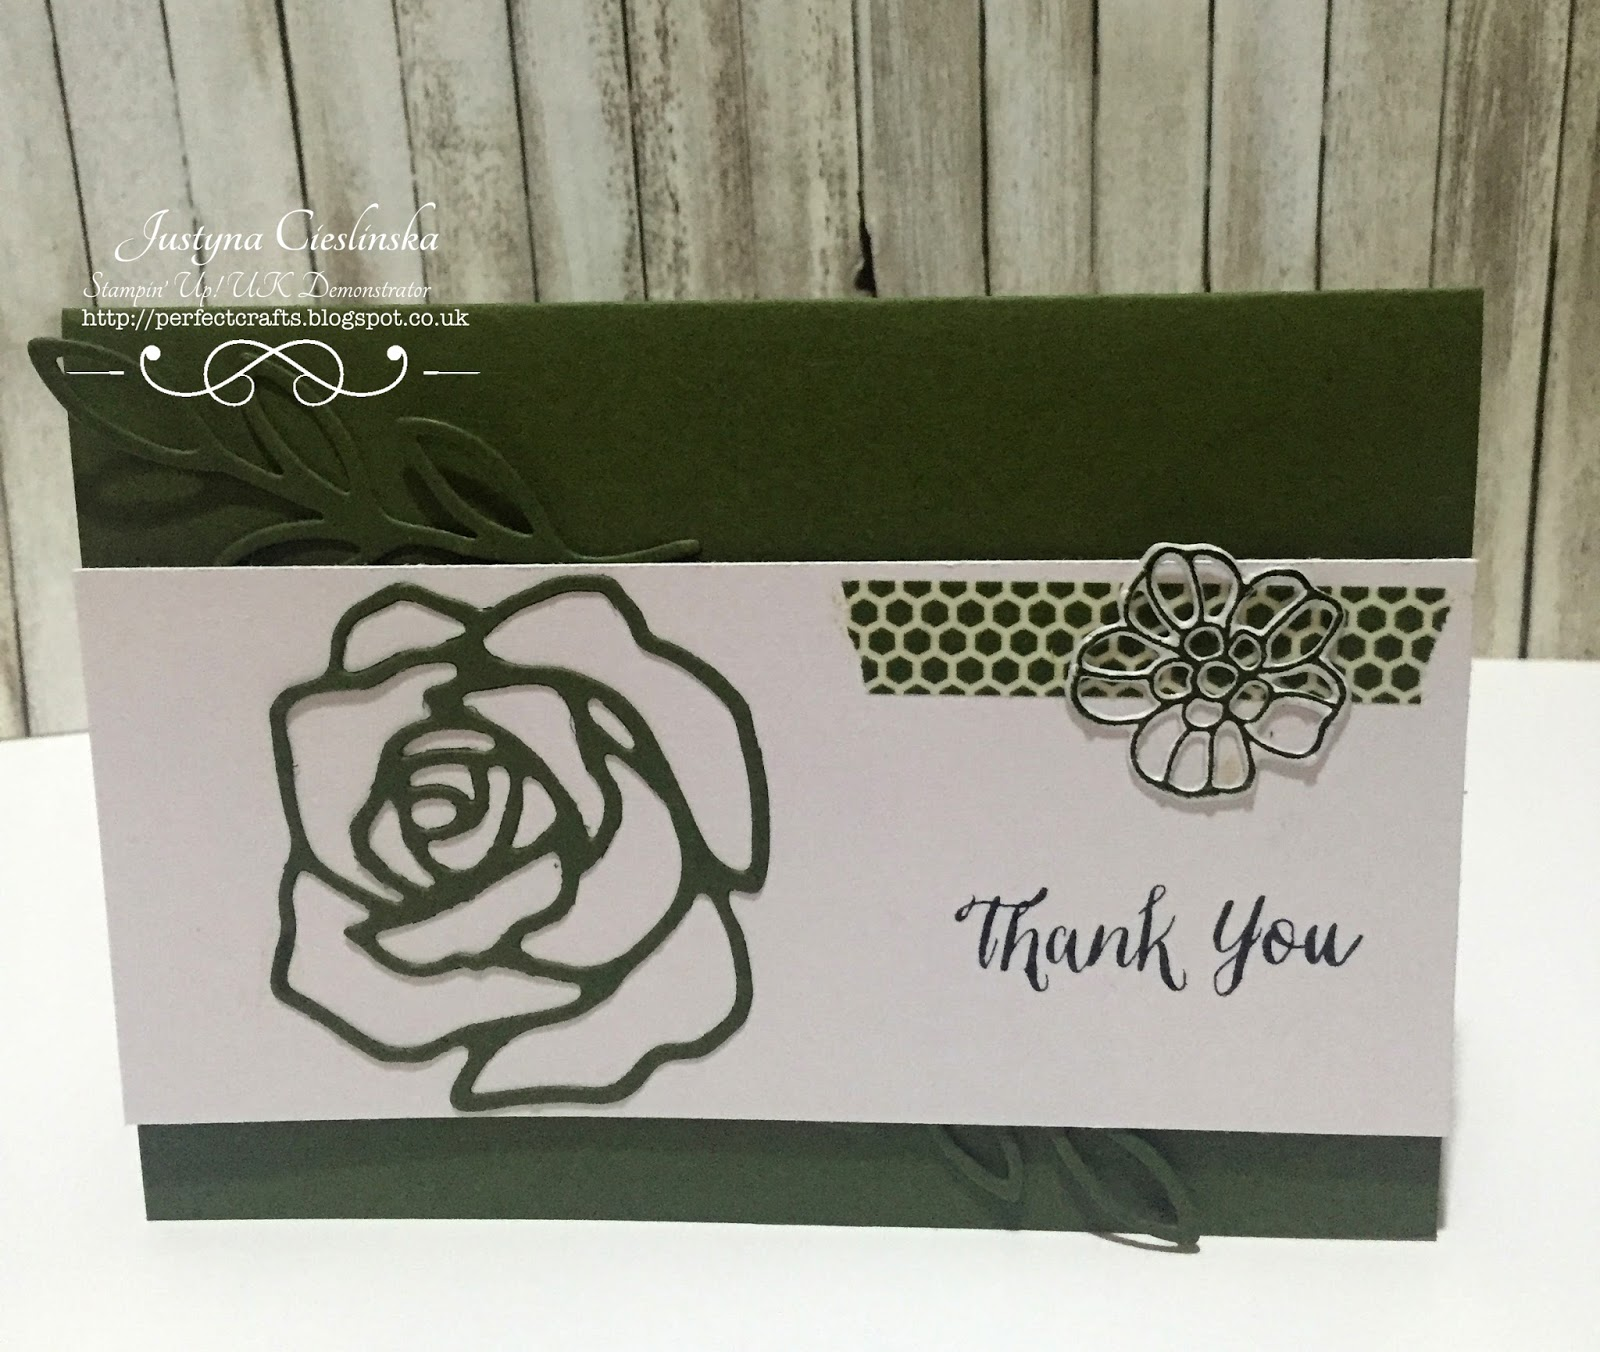 stampin up, stampin up uk, stampin up demonstrator uk